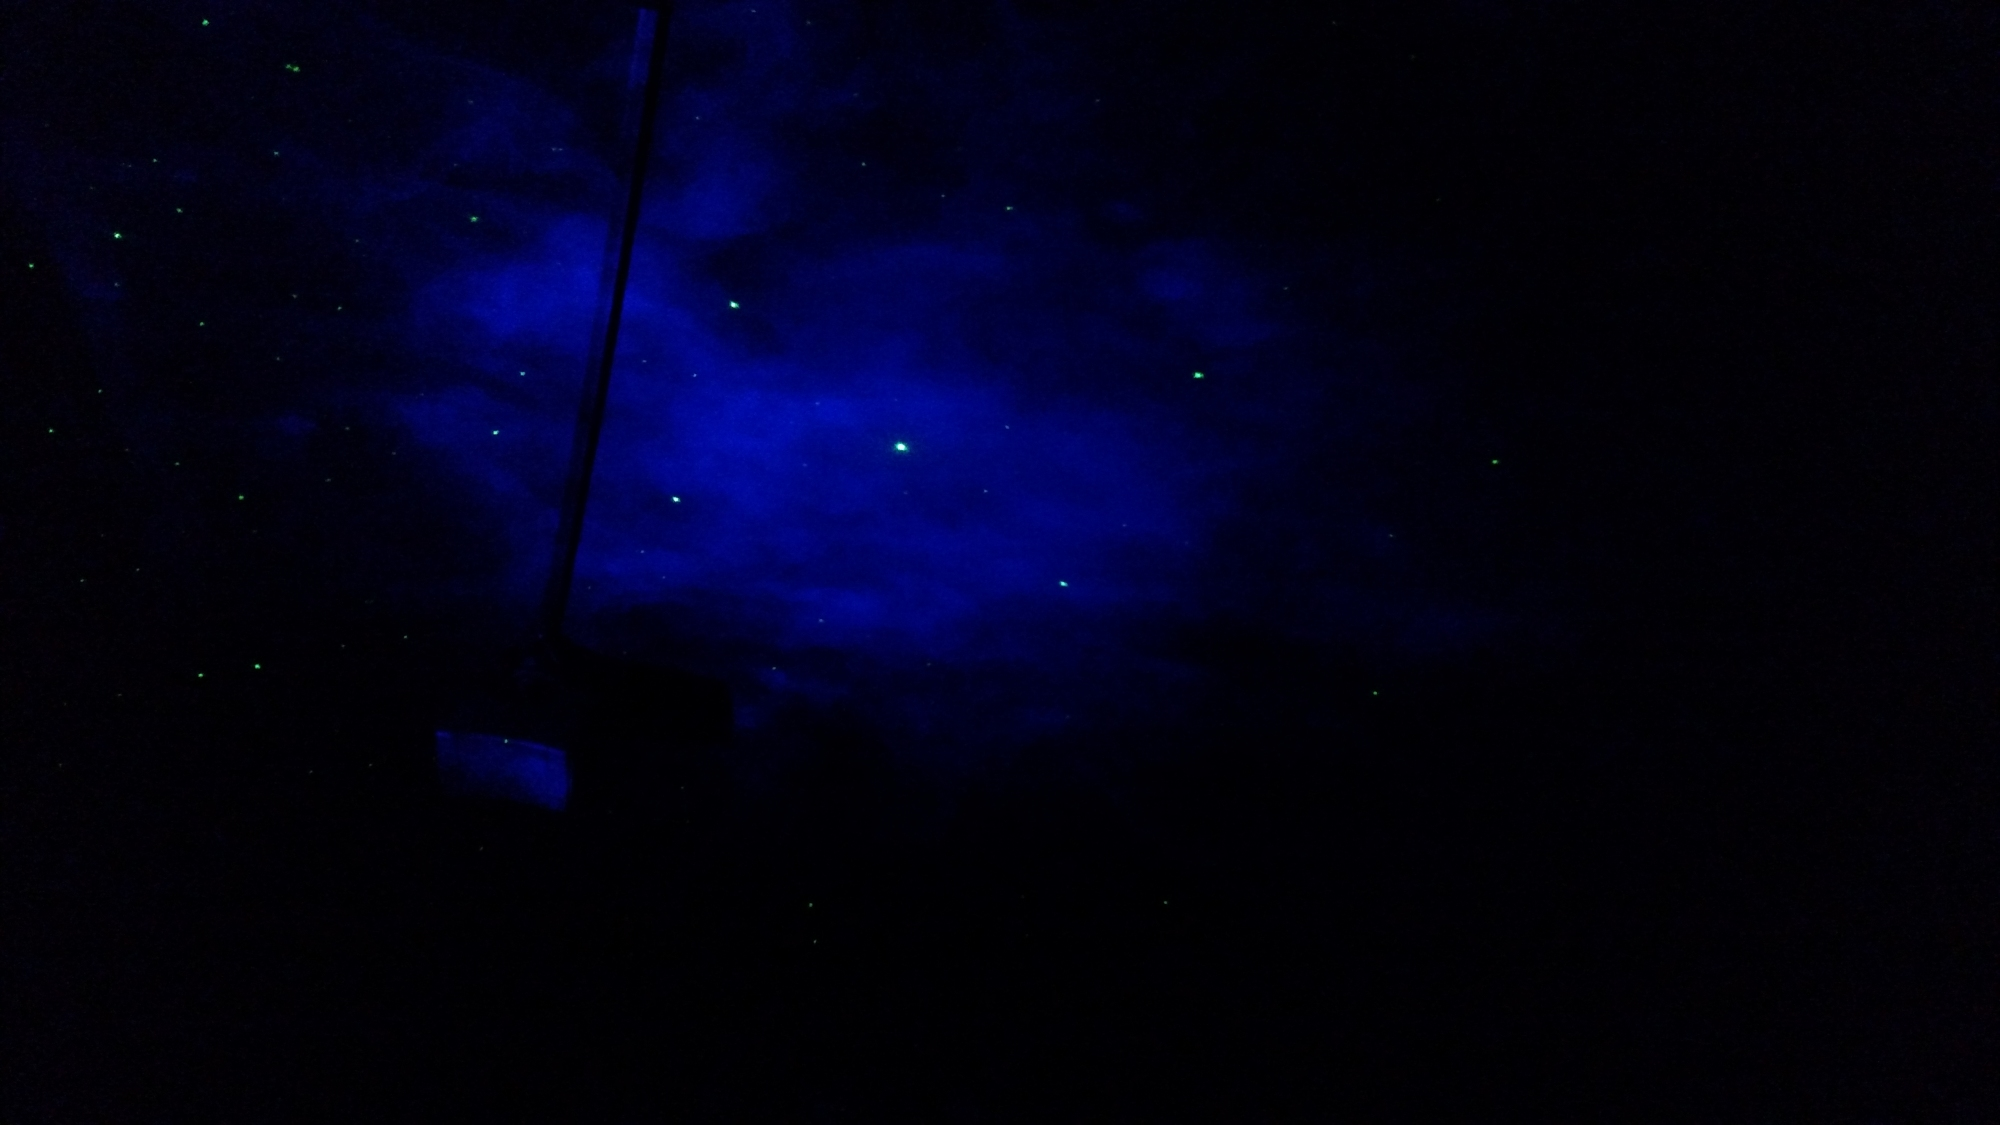 Laser Stars projector with nebula cloud